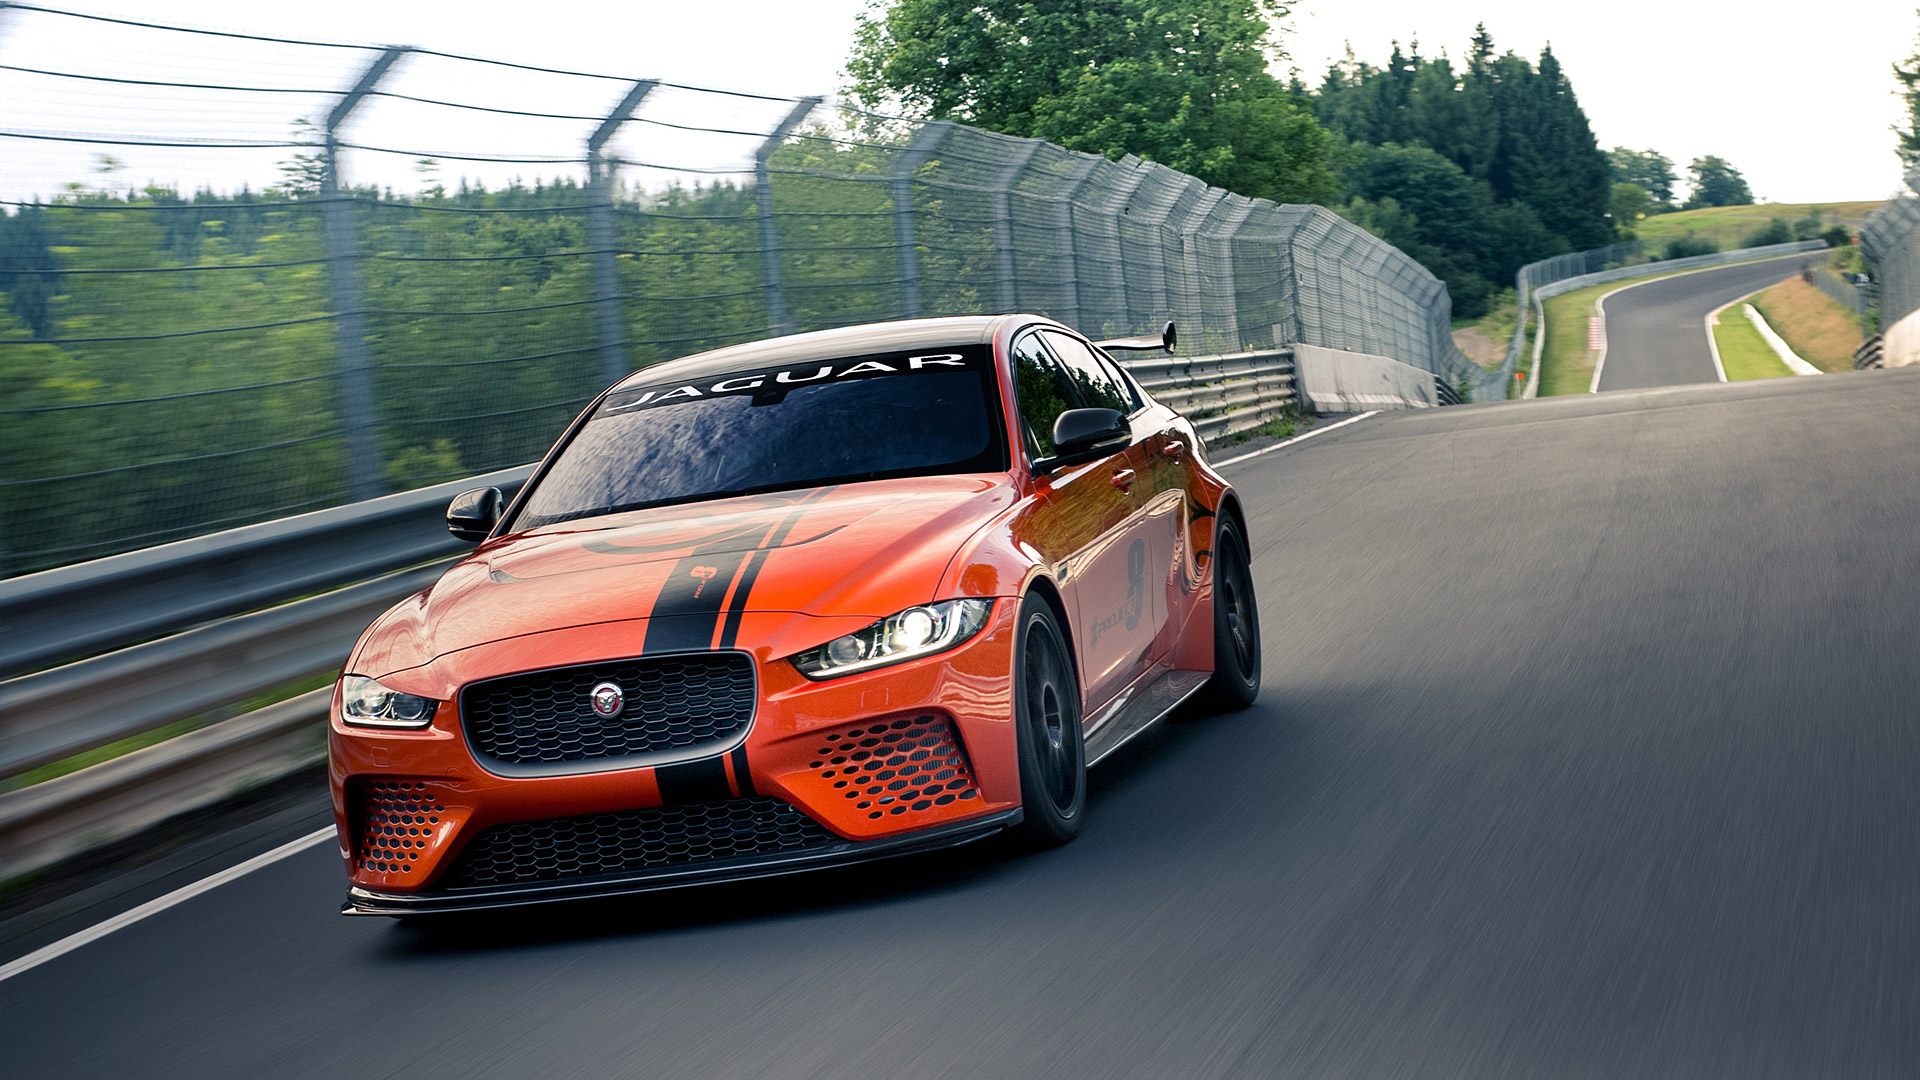 Free Download 2018 Jaguar Xe Sv Project 8 Wallpapers Hd Images Wsupercars 1920x1080 For Your Desktop Mobile Tablet Explore 31 Jaguar Xe Project 8 Wallpapers Jaguar Xe Project 8 Wallpapers Jaguar Xe 2019 Wallpapers Project Wallpaper